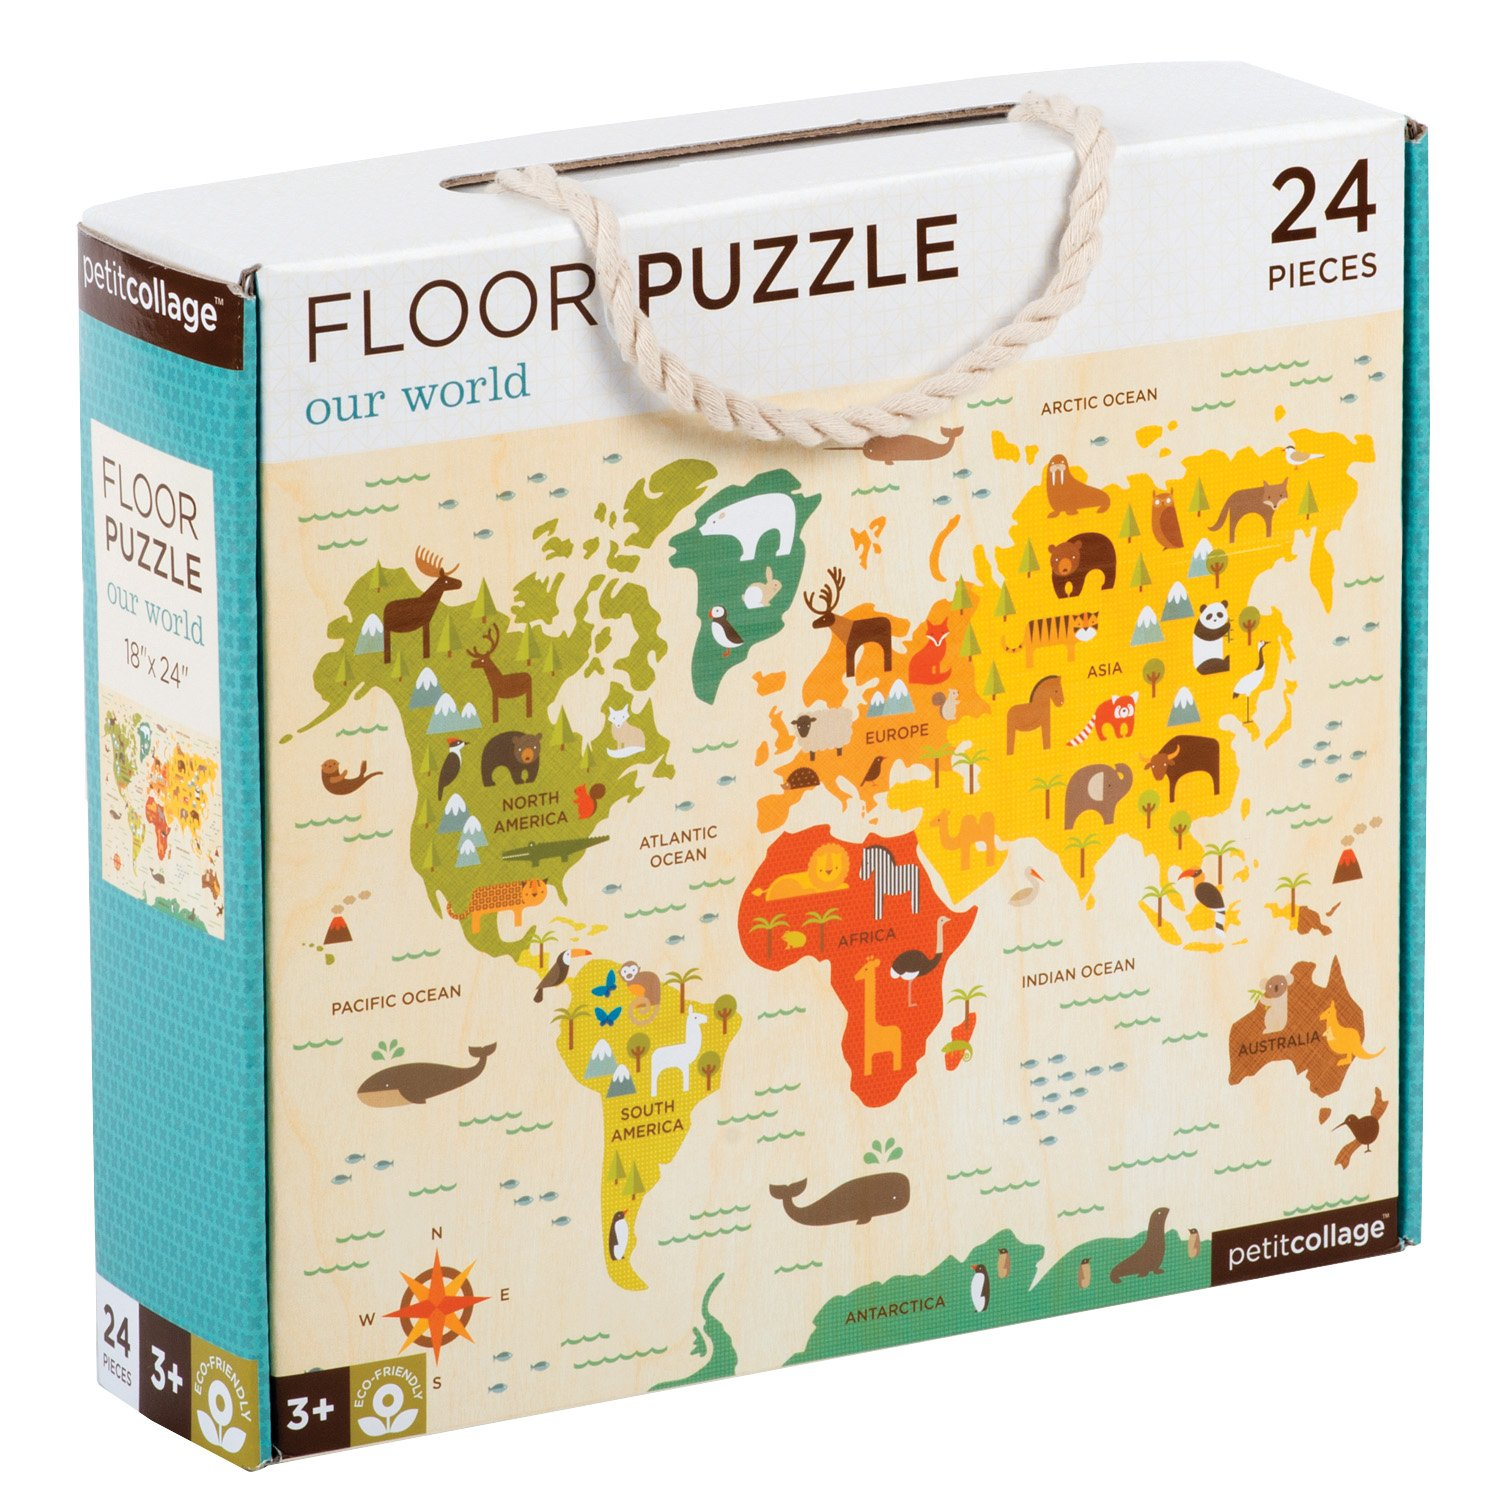 Petit Collage Floor Puzzle, Our World, 24 Pieces by Petit Collage